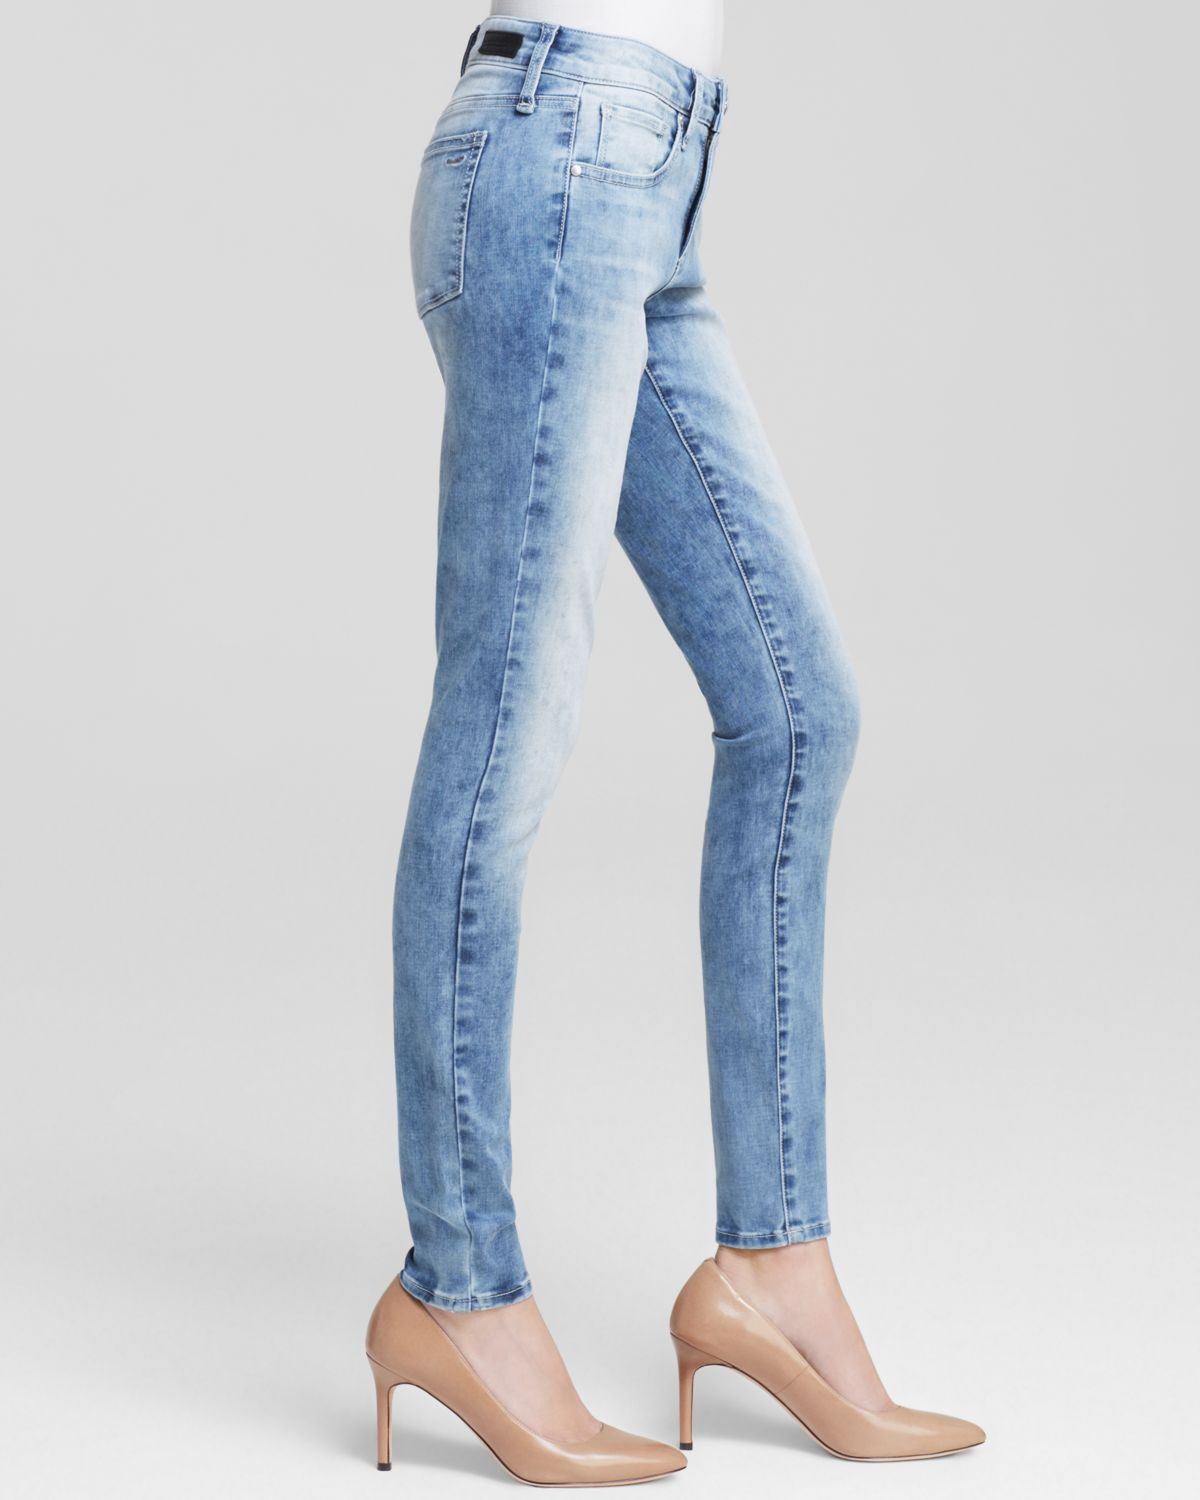 Greywire Chelsea Skinny Jeans In Cloudy in Blue